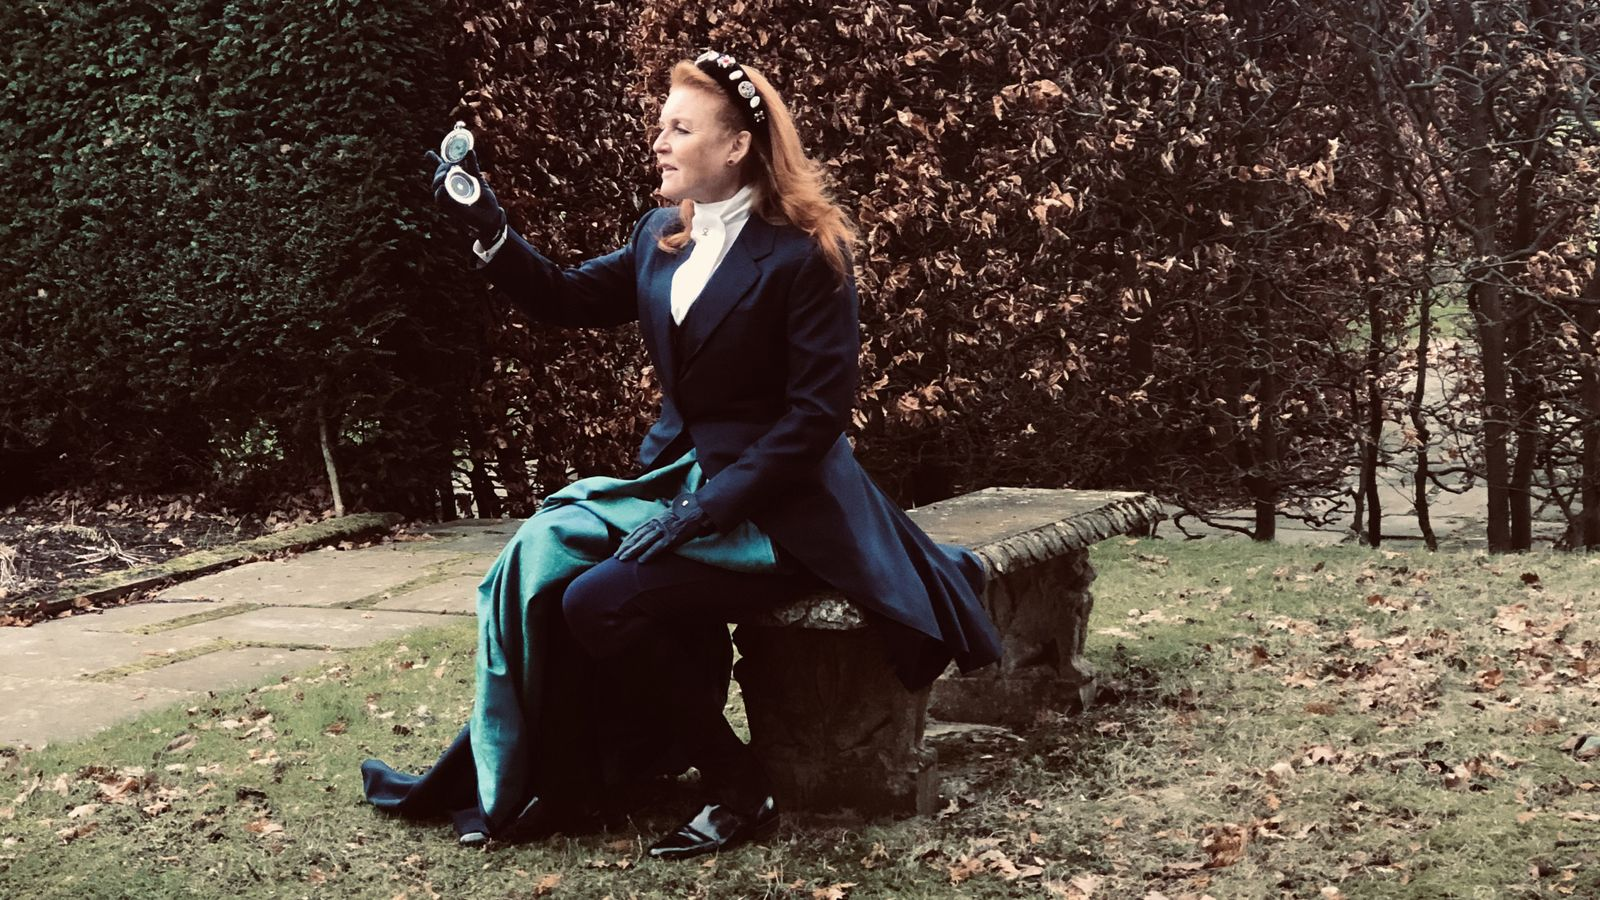 Duchess of York signs book deal with Mills & Boon for debut romantic novel | Ents & Arts News